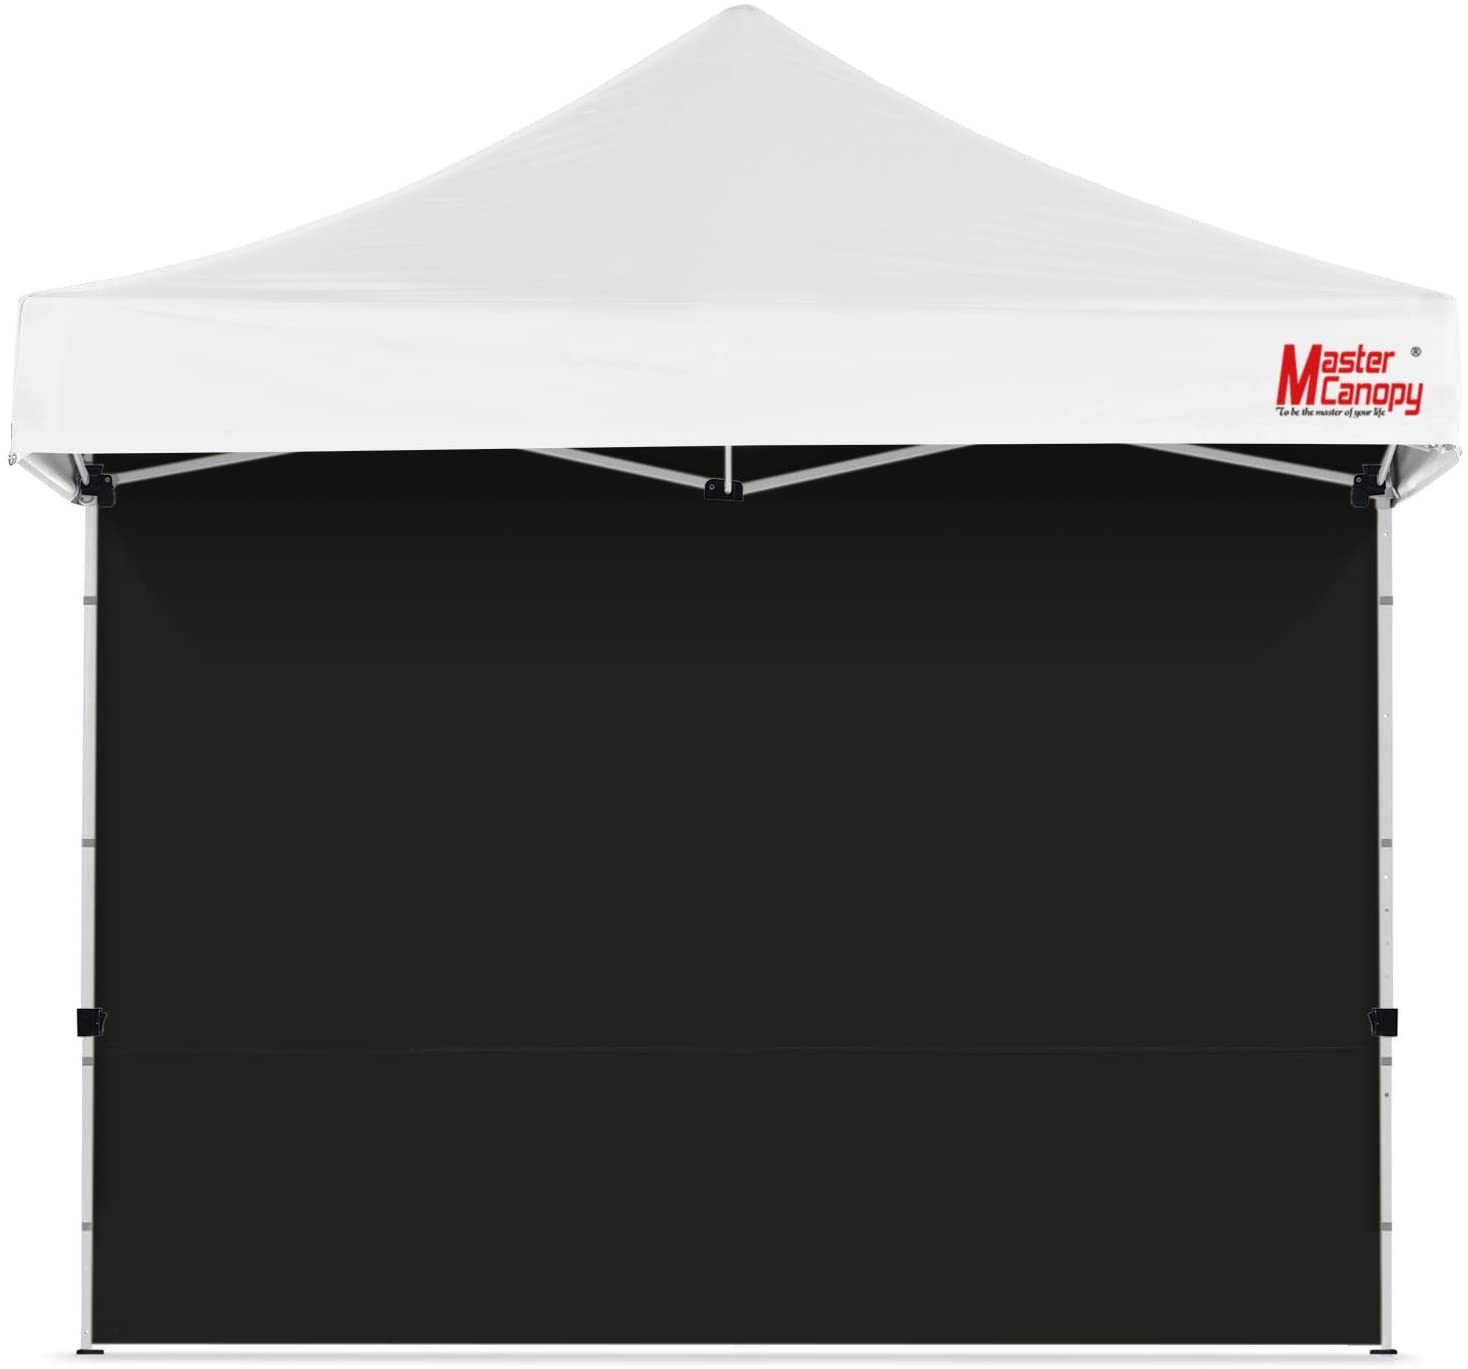 Master Canopy Instant Wall Tent